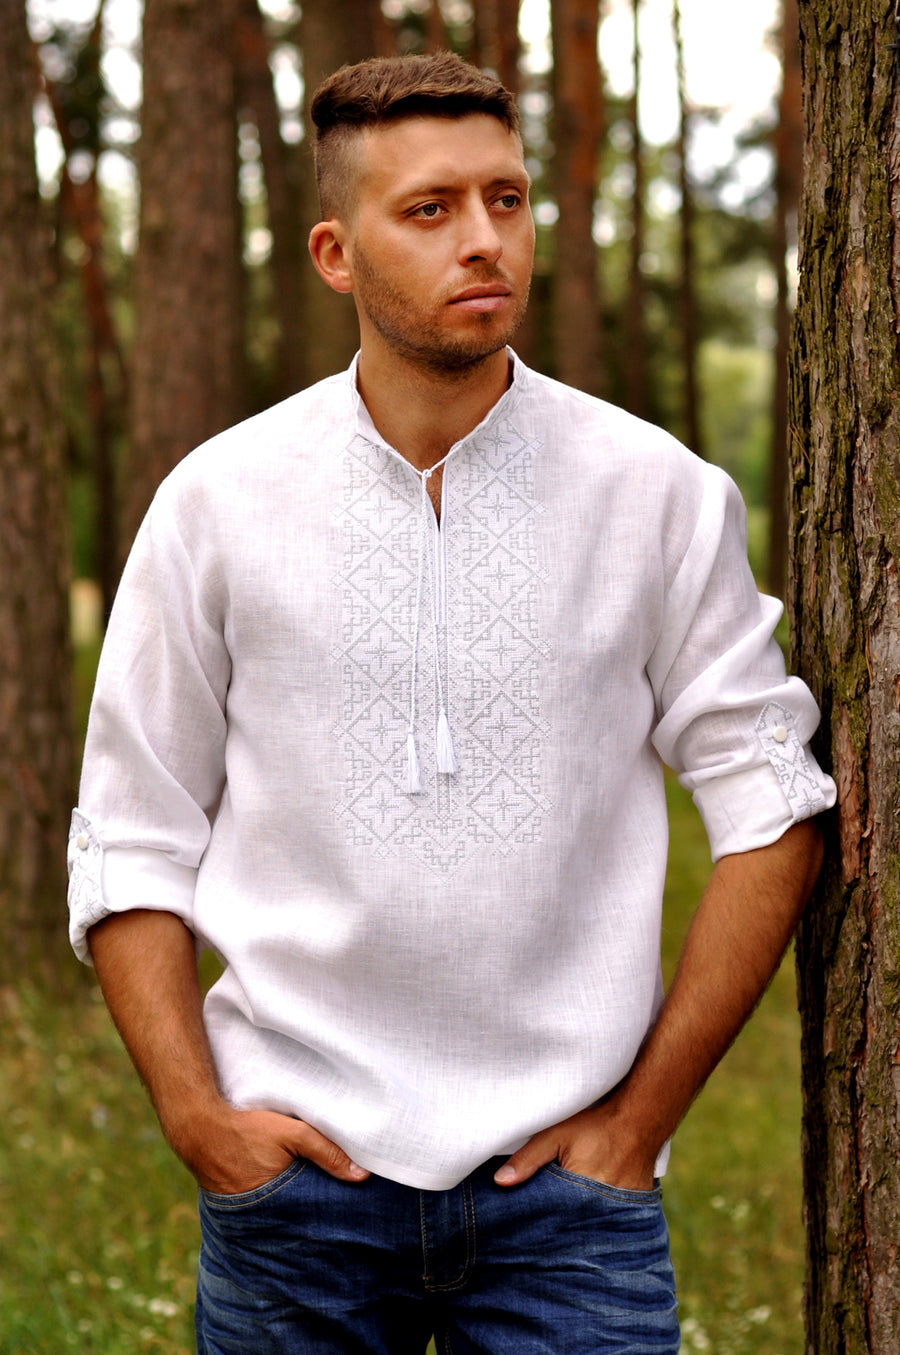 Men's wedding shirt with White on White embroidery